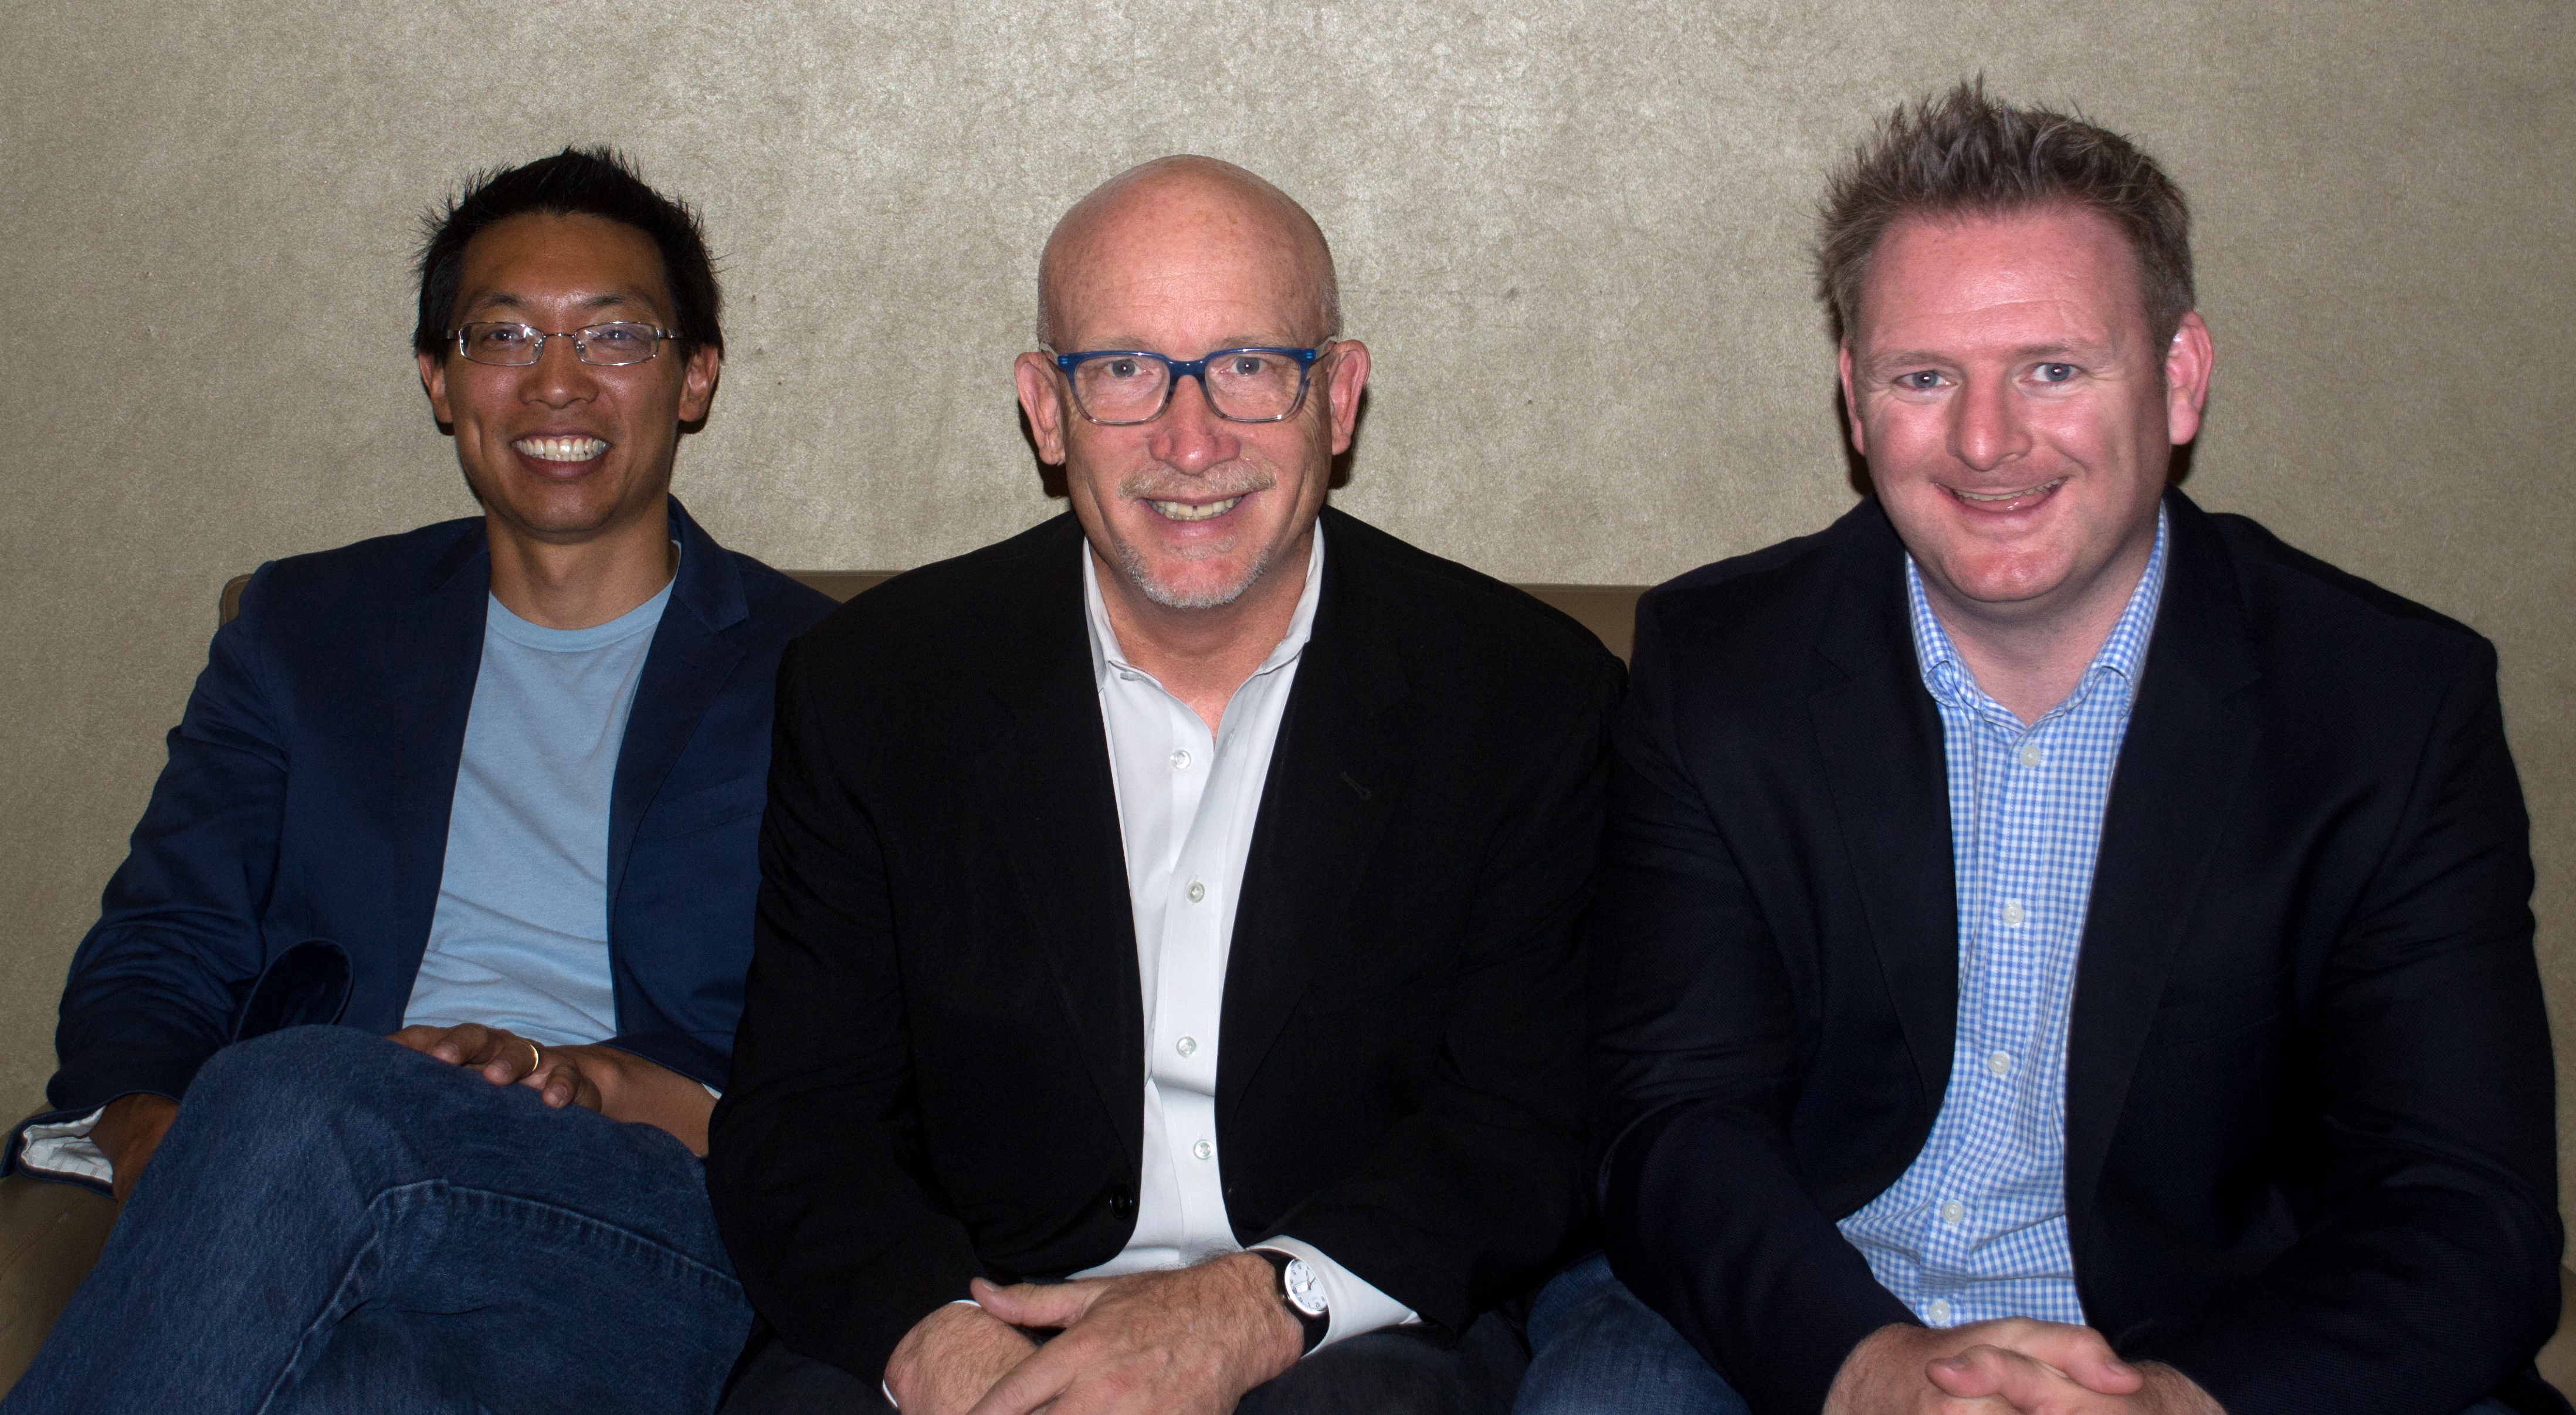 Caption: Eric Chien, Alex Gibney, Liam O'Murchu ,San Francisco, CA 5/11/16, Credit: Andrea Chase